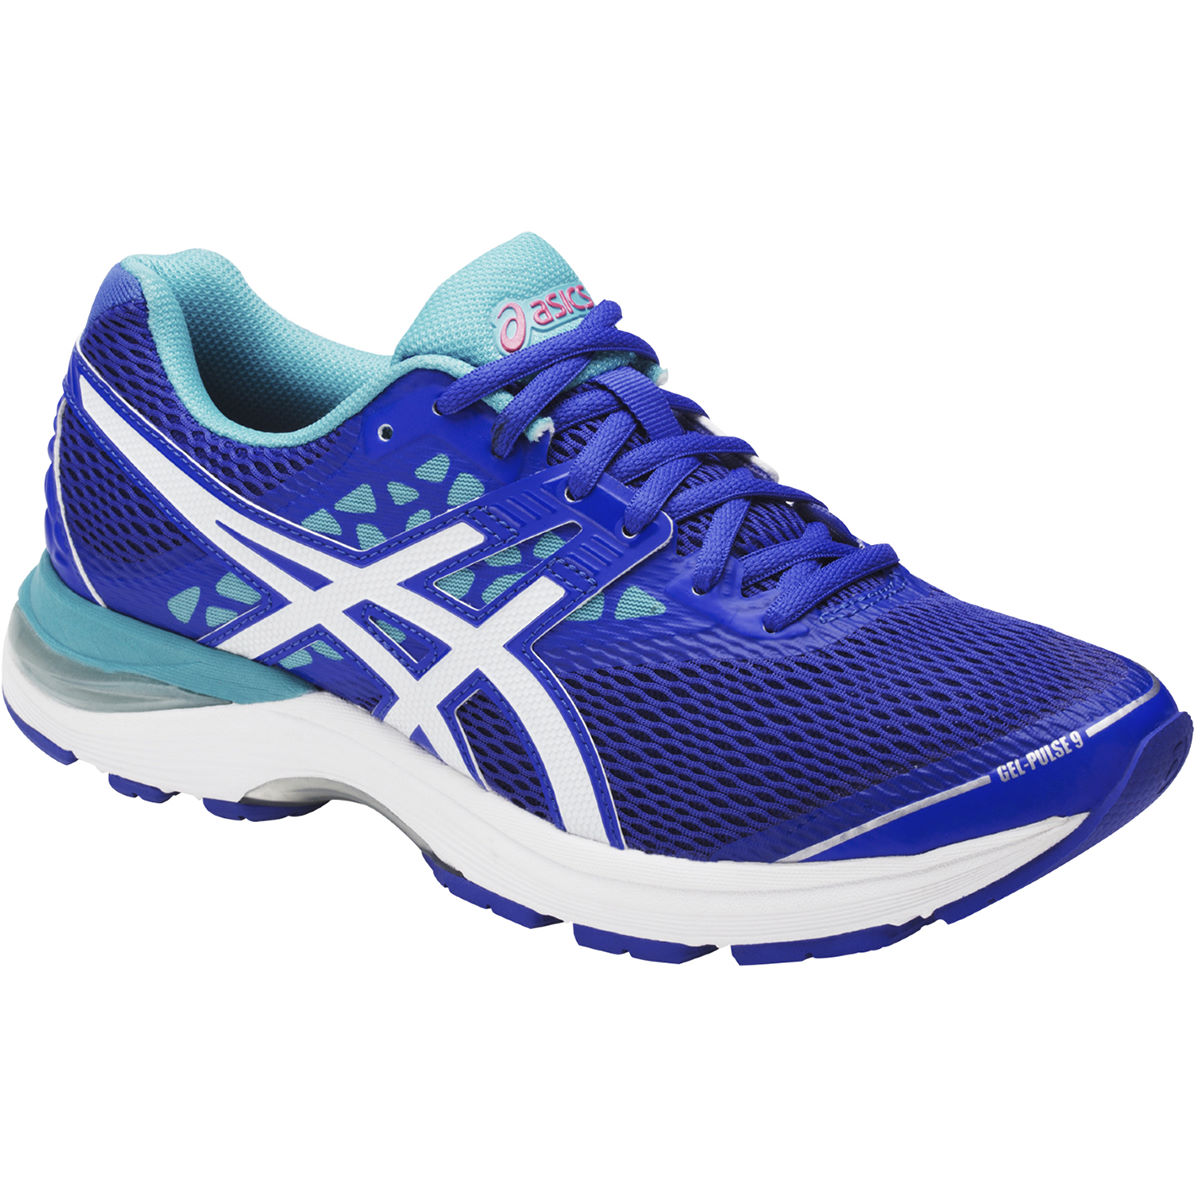 Chaussures Femme Asics Gel-Pulse 9 - UK 6 Blue Purple/White/Aq